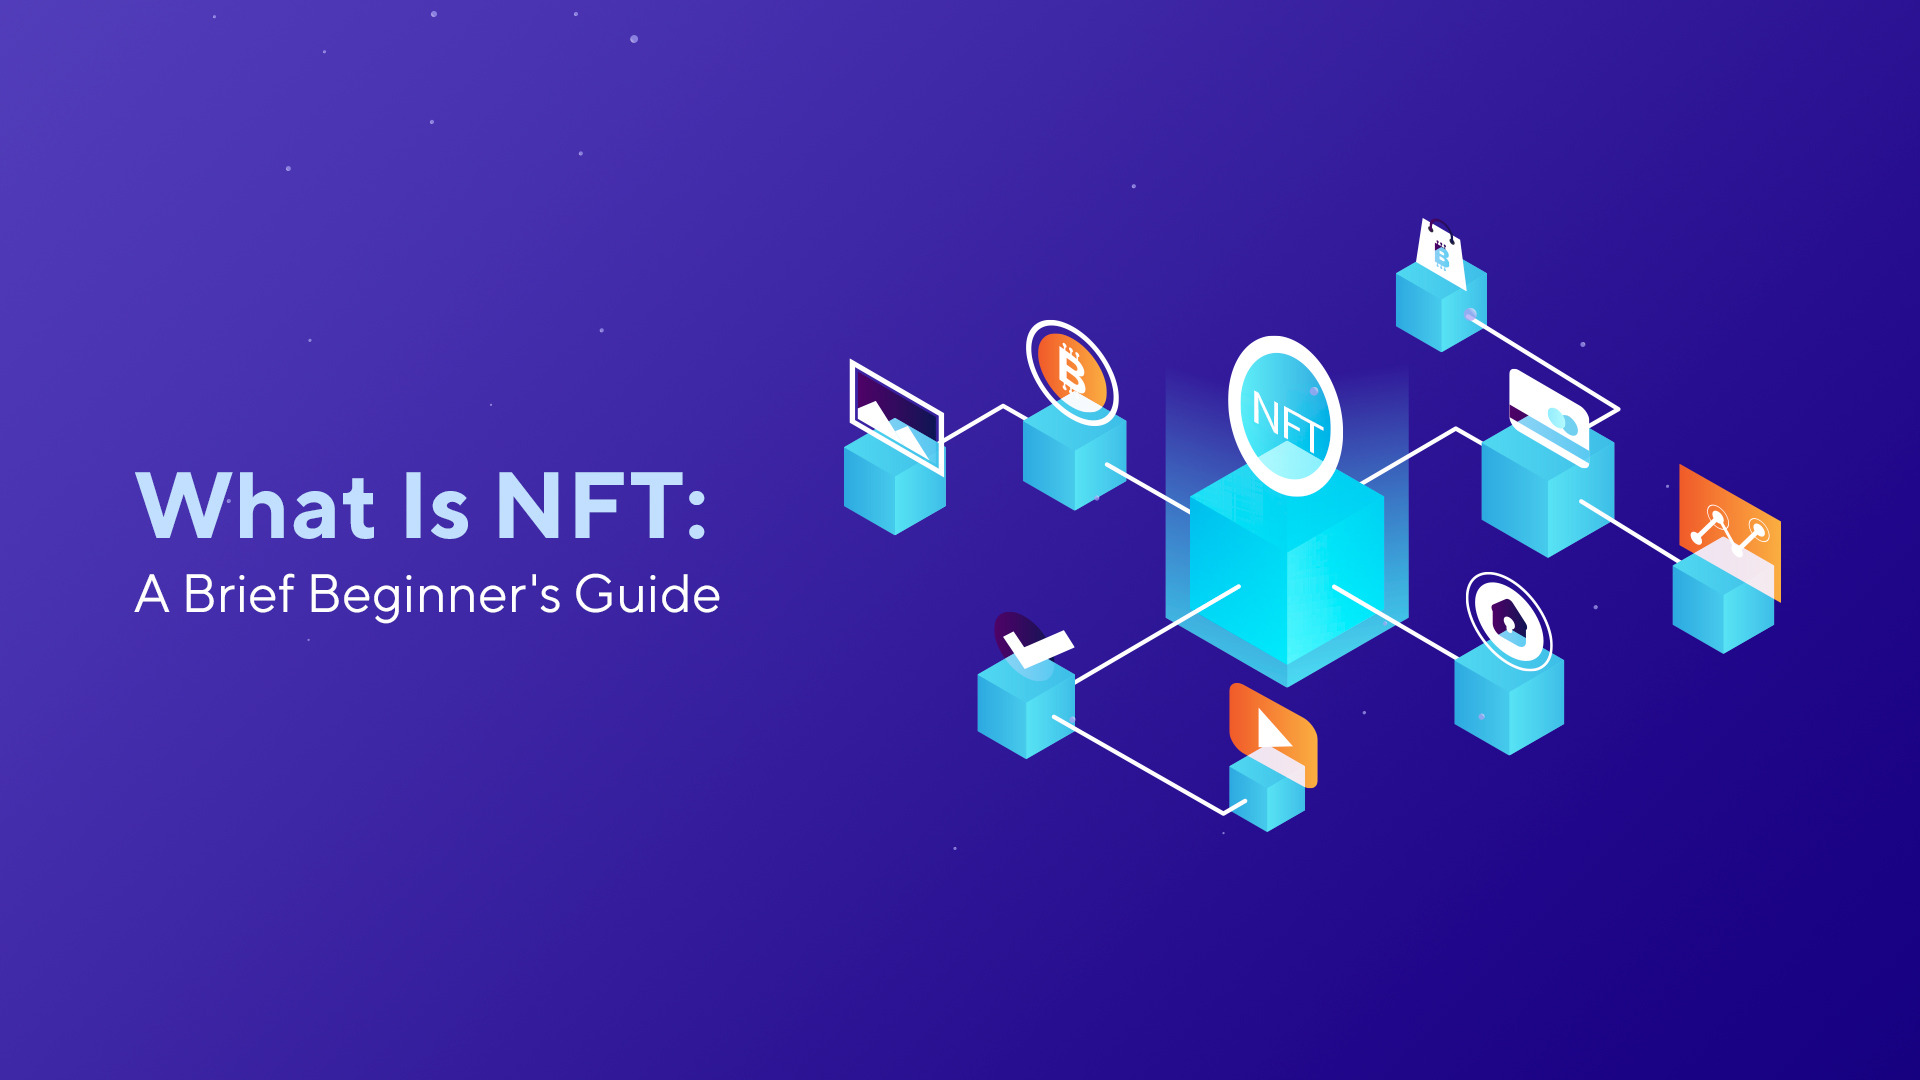 What Is NFT: A Brief Beginner's Guide